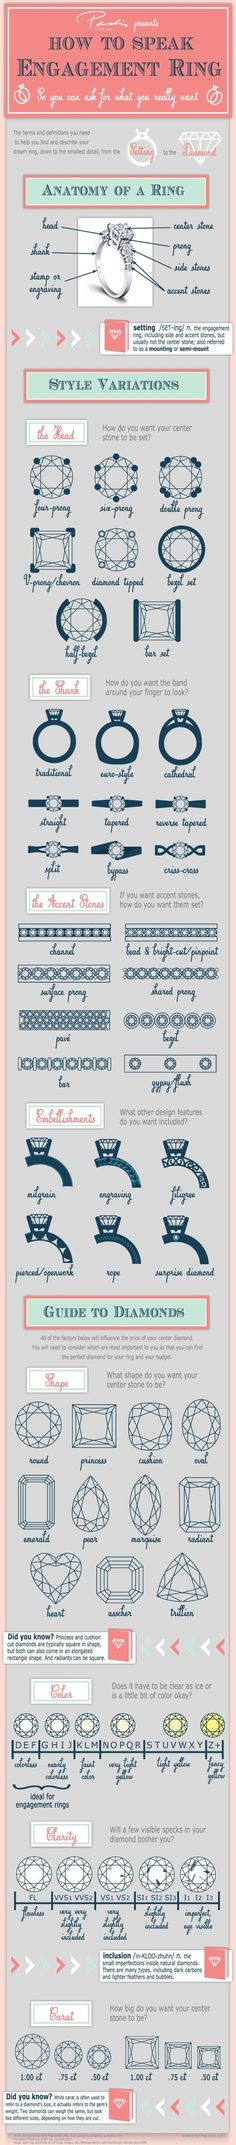 Curious to know the difference between a tapered ring and a bypass ring? Not sure what a Euro-style looks like? Then you'll definitely want to keep this helpful infographic handy. Photo via Padis